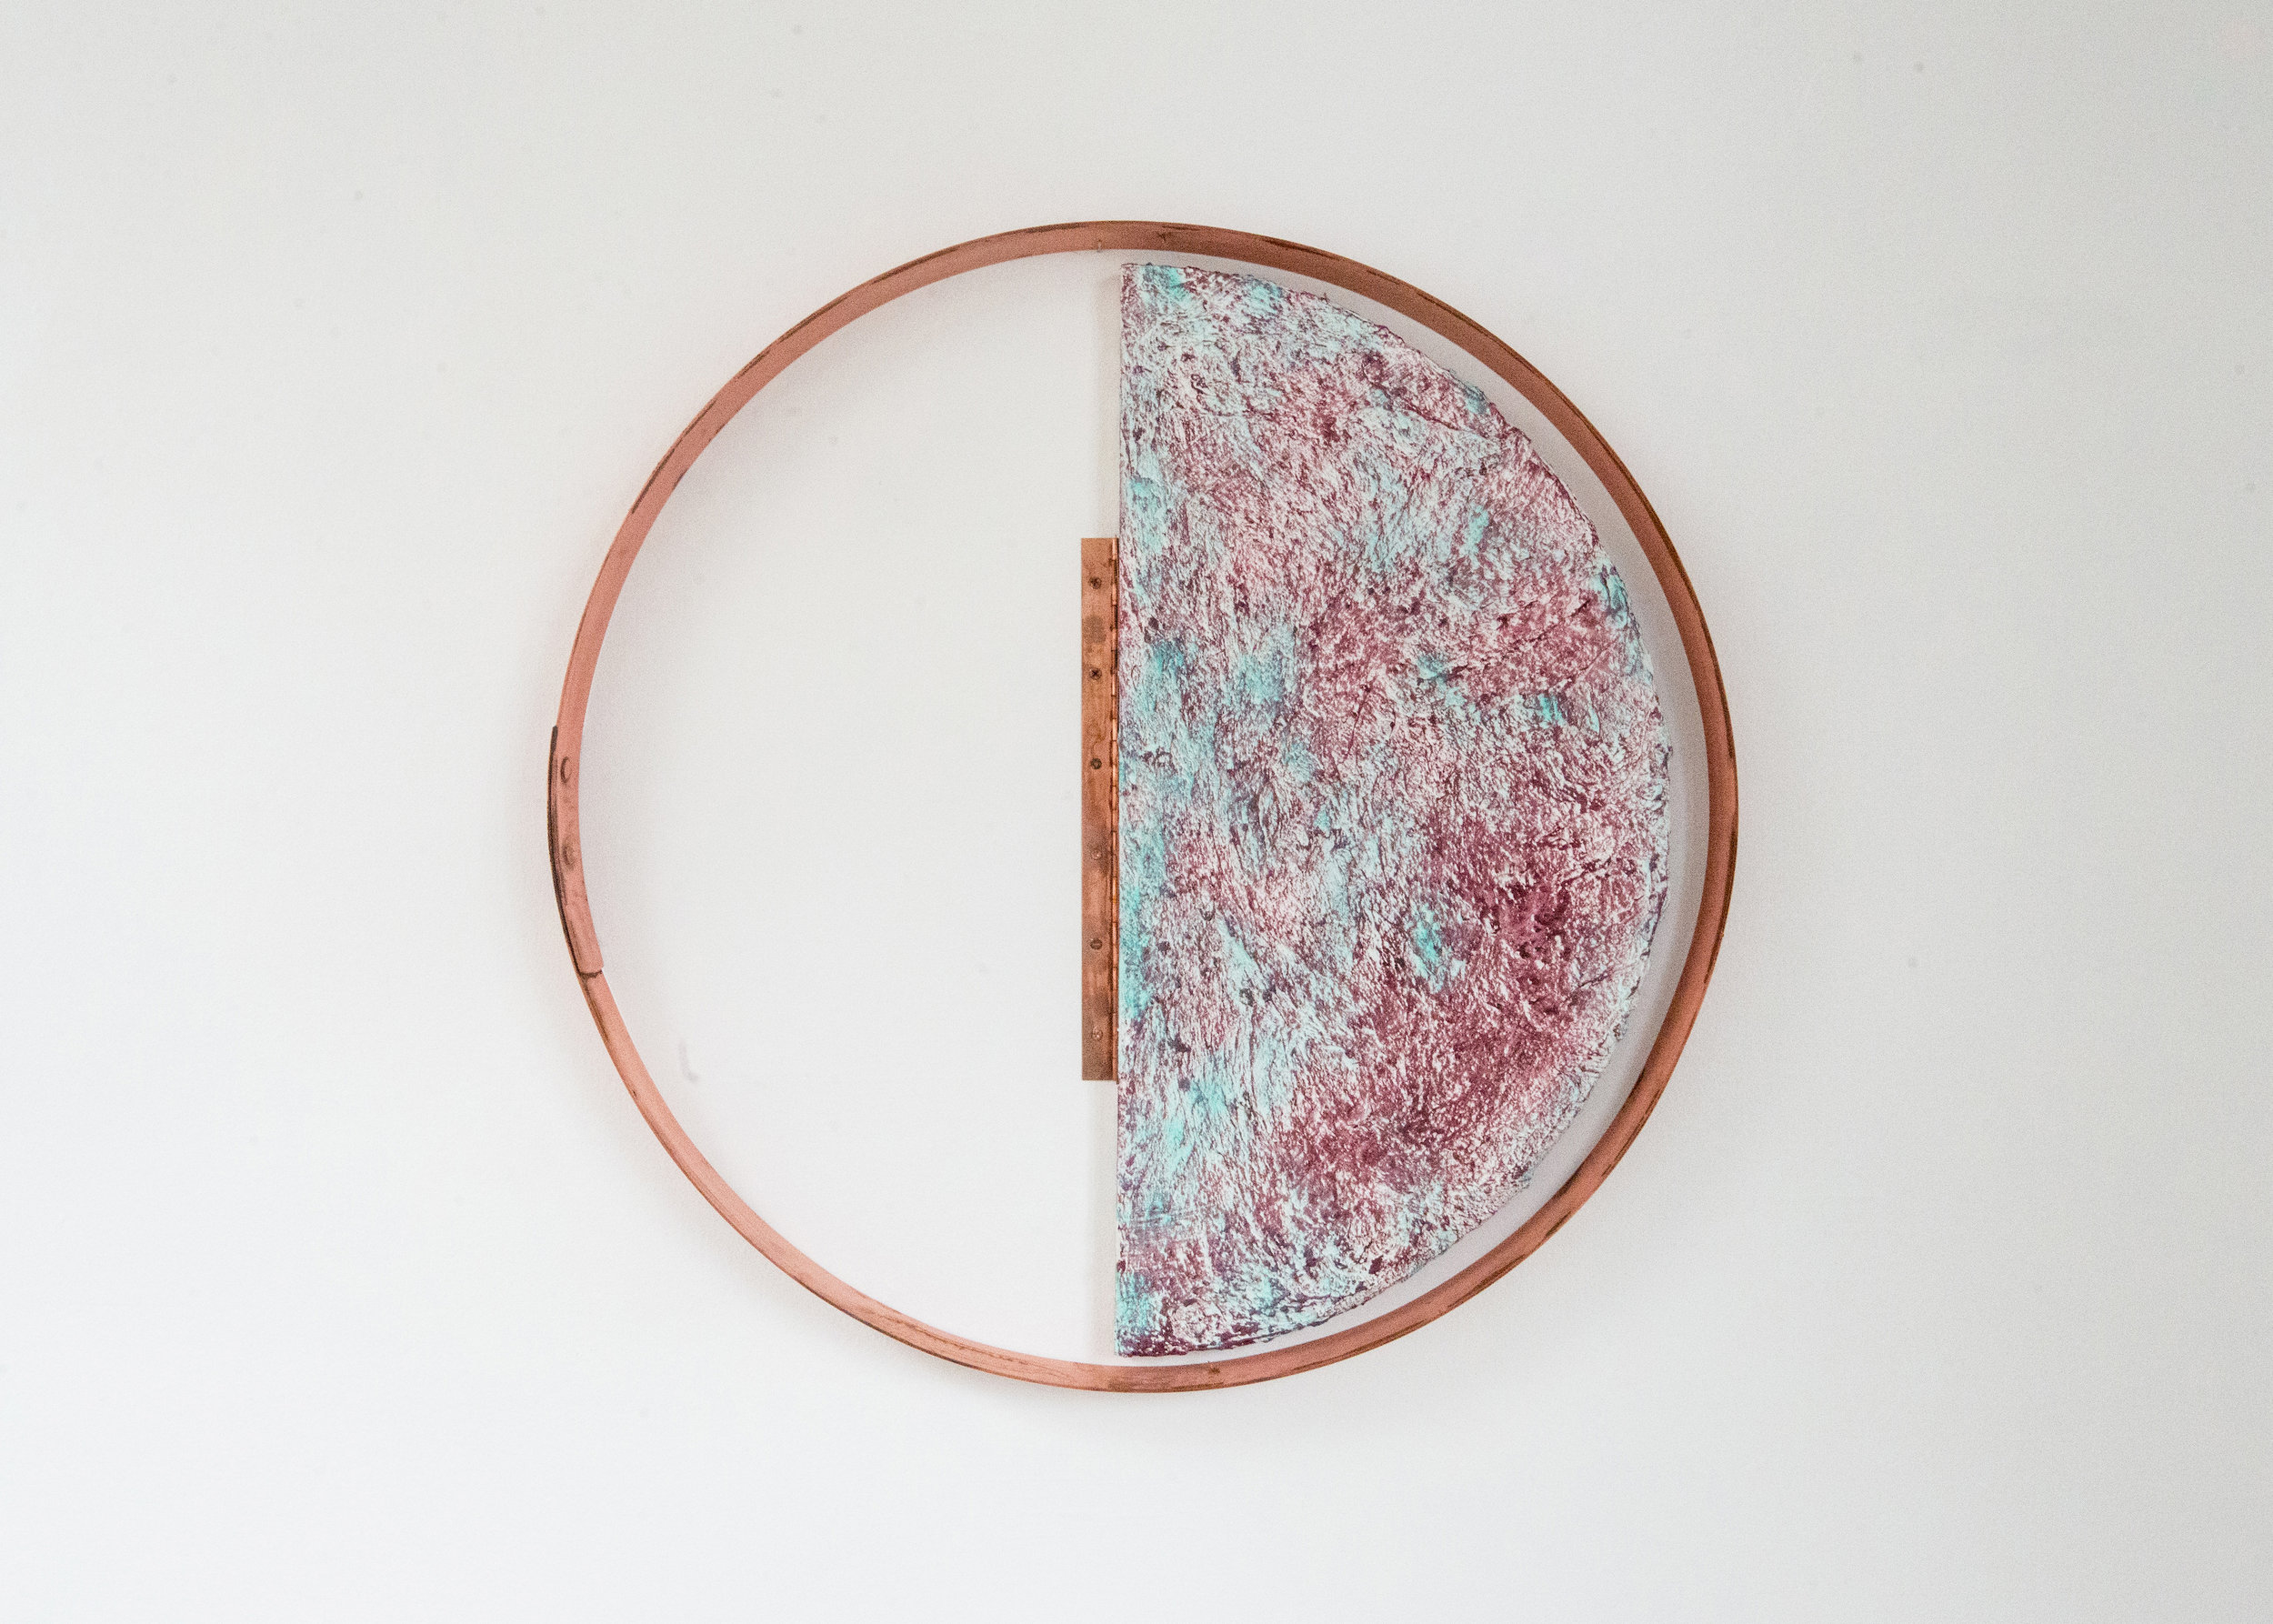 Lana Williams,  Moon Block , 2018. Acrylic, oil, sculptamold, copper plated steel, copper plated hinge. 25.5 x 25.5 inches